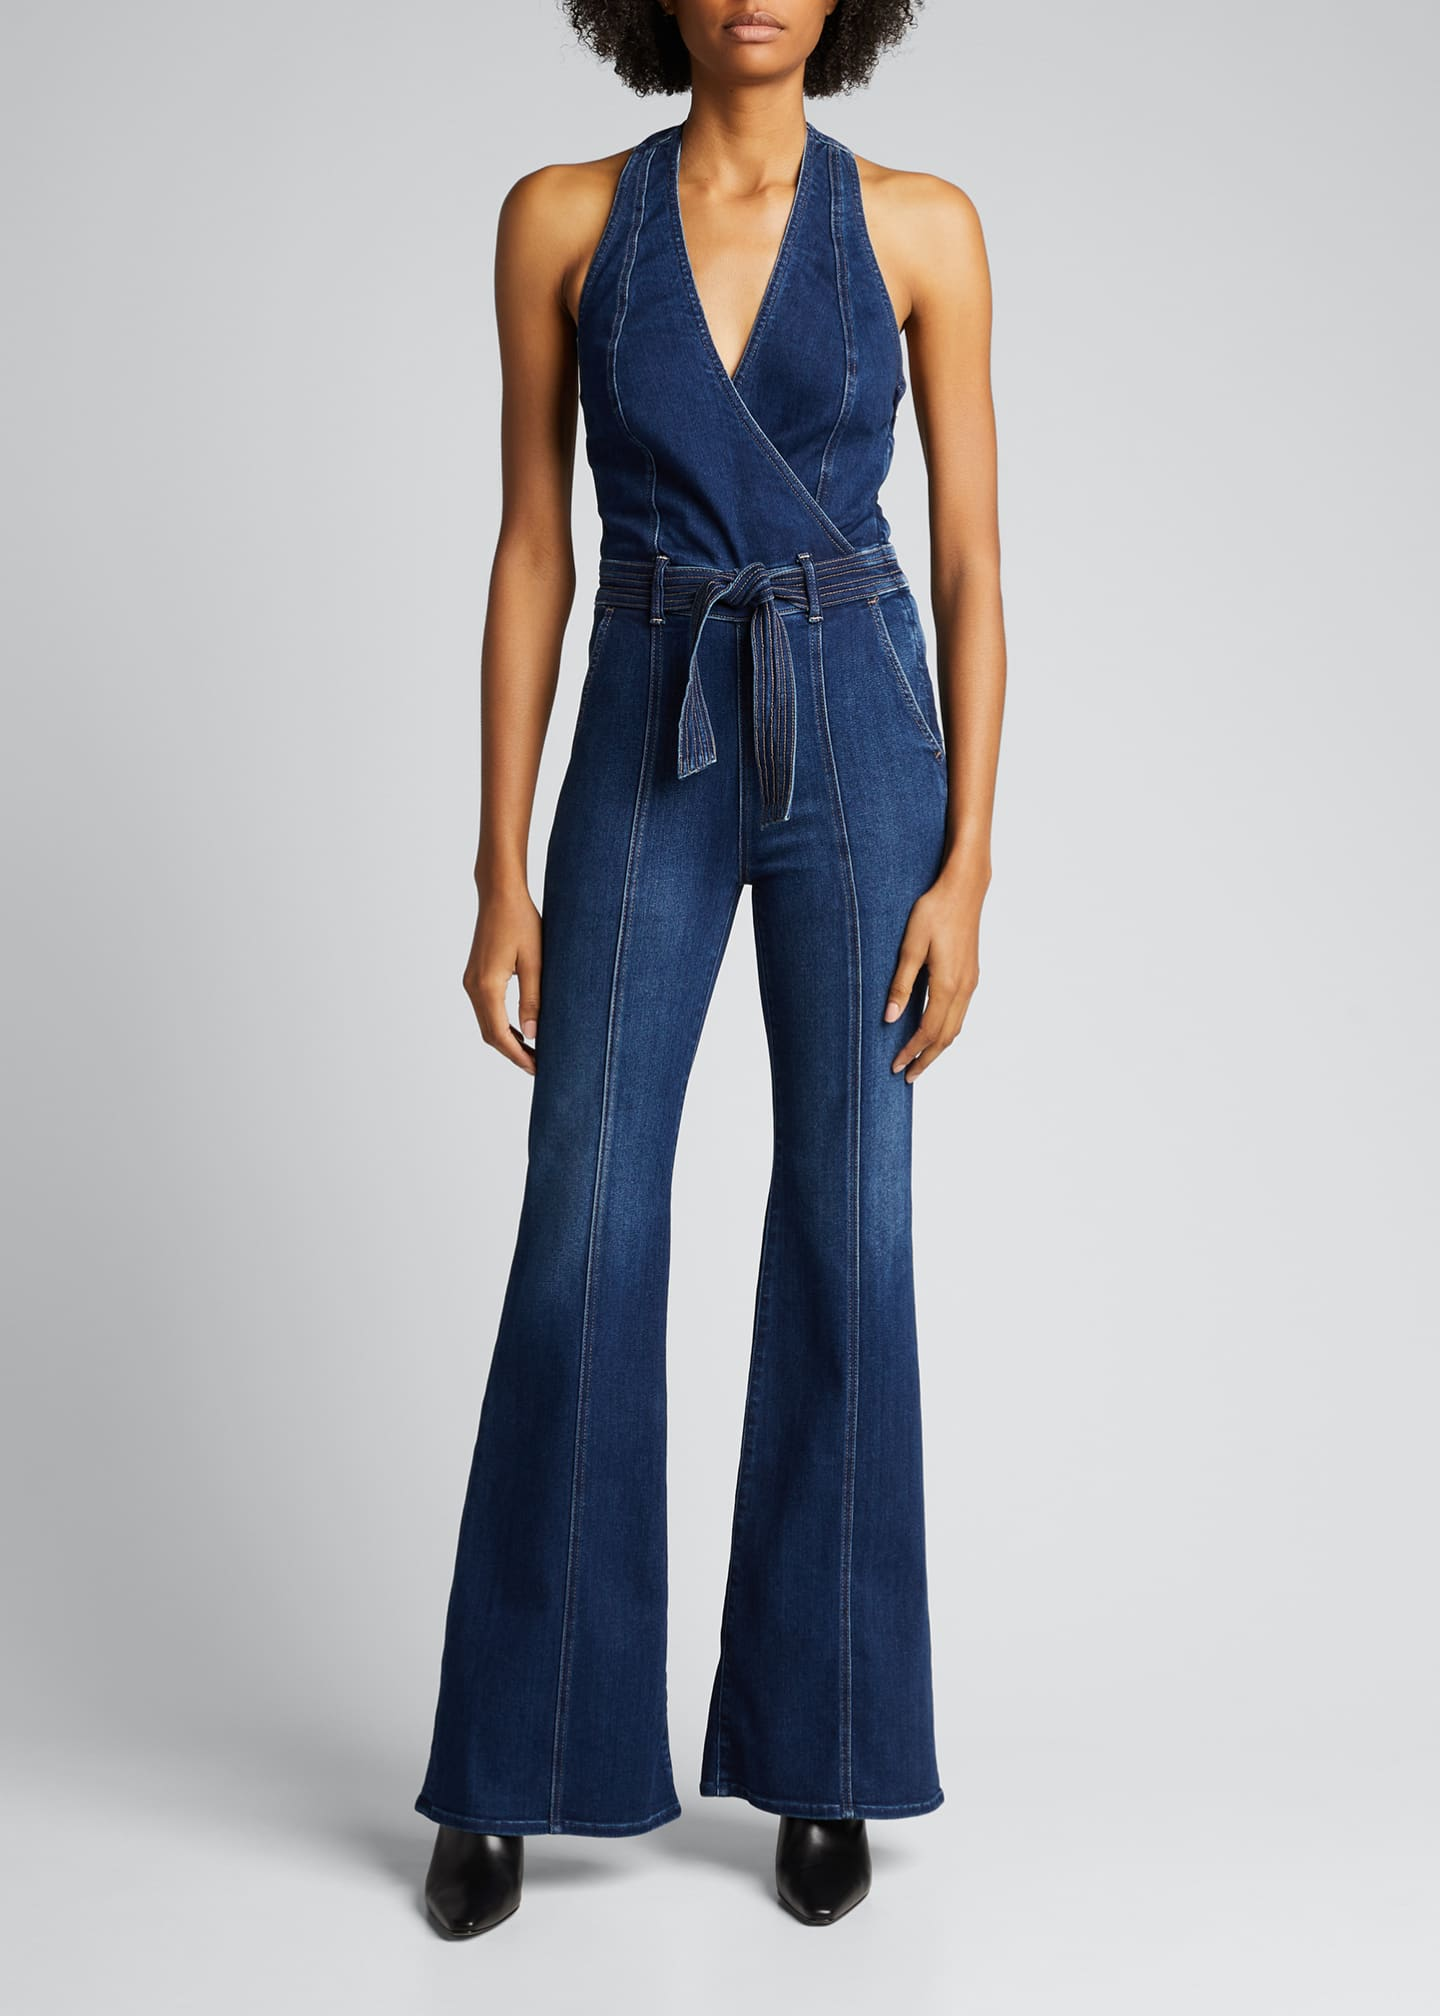 Image 1 of 5: The Halter Doozy Jumpsuit